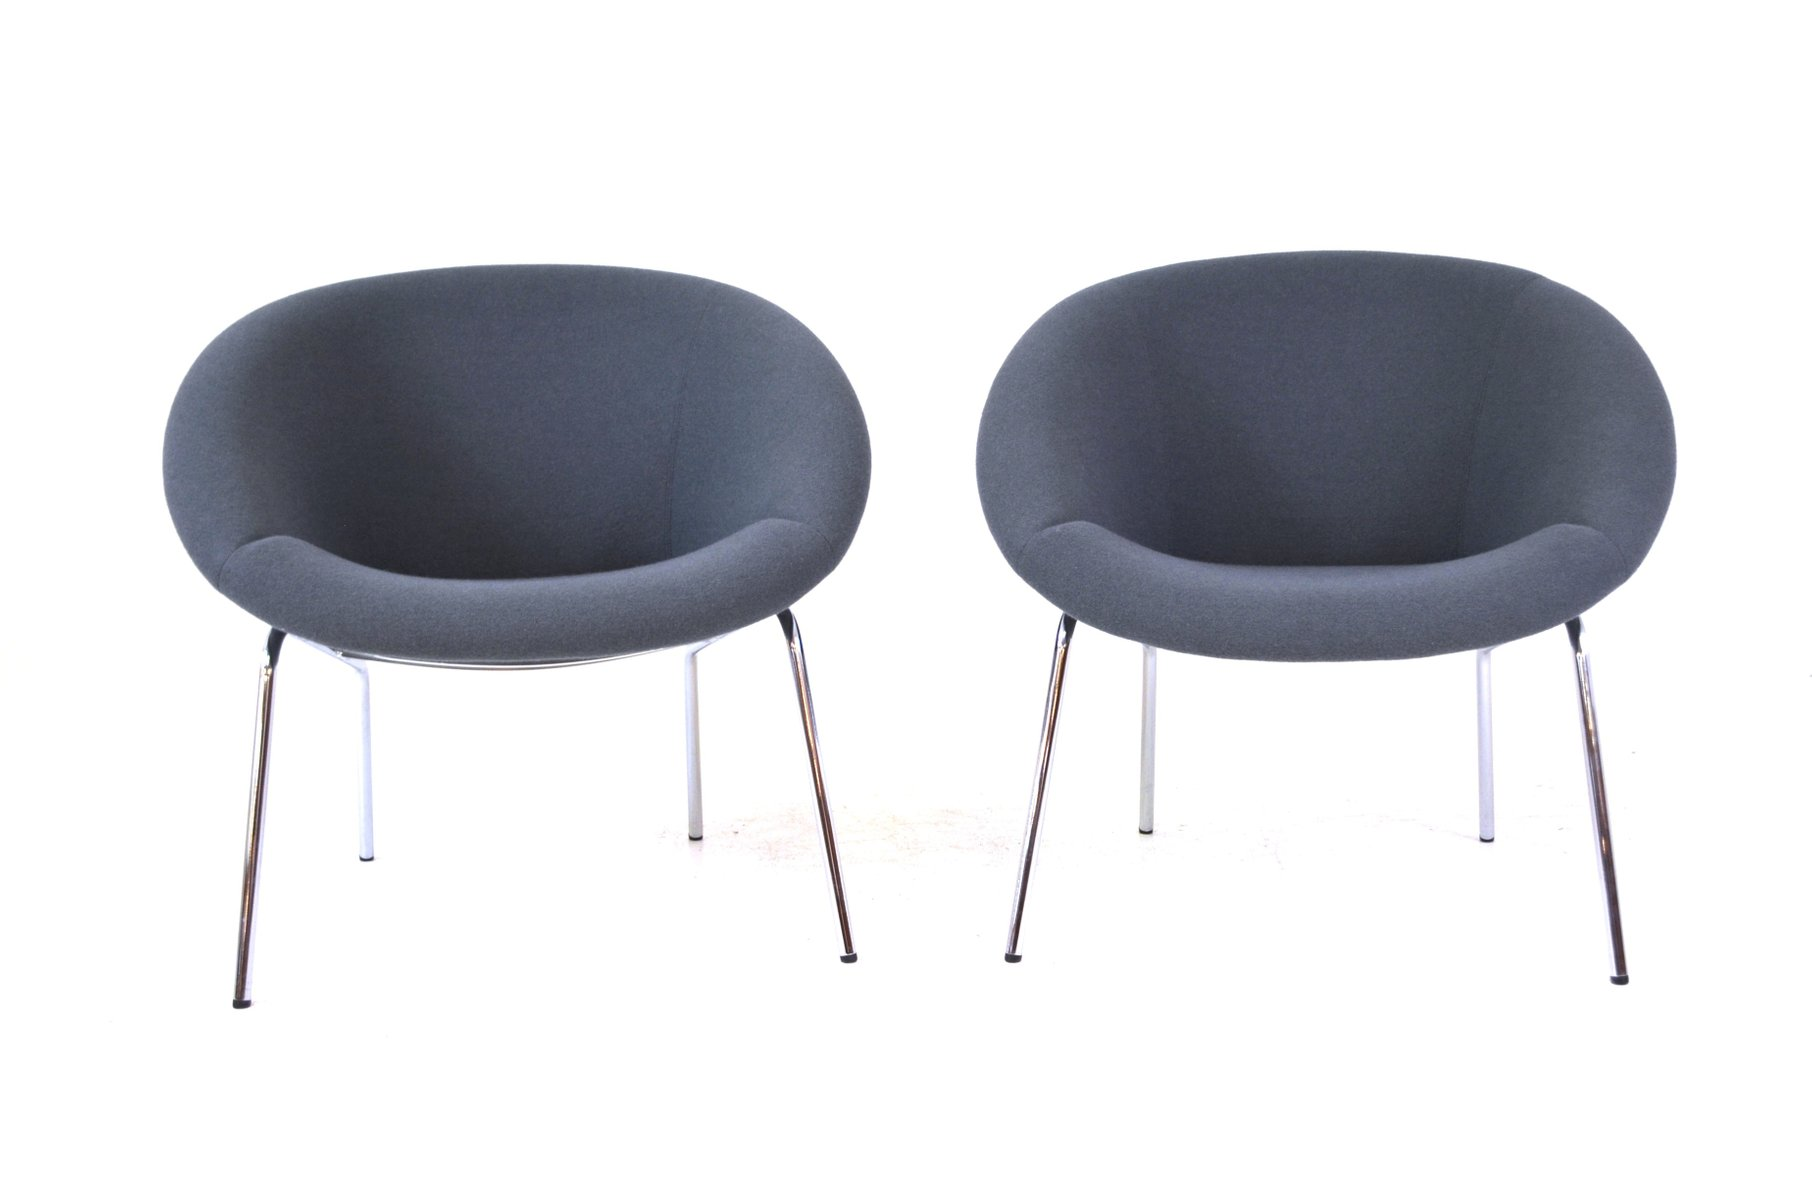 model 369 easy chairs by walter knoll 1954 set of 2 for sale at pamono. Black Bedroom Furniture Sets. Home Design Ideas